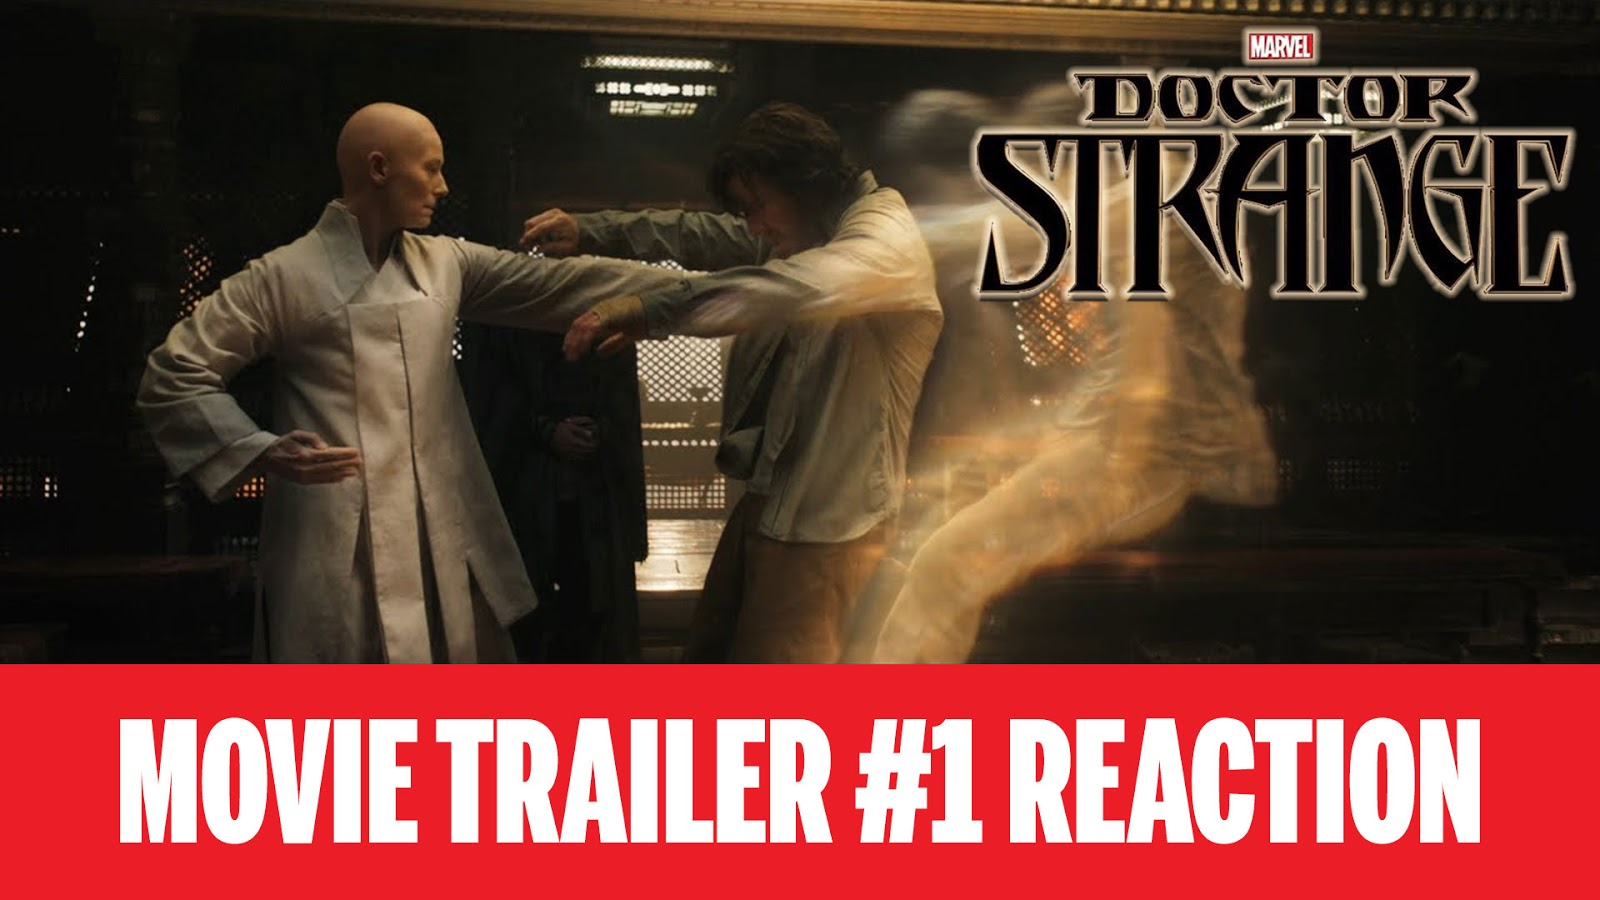 reaction to trailer for Doctor Strange